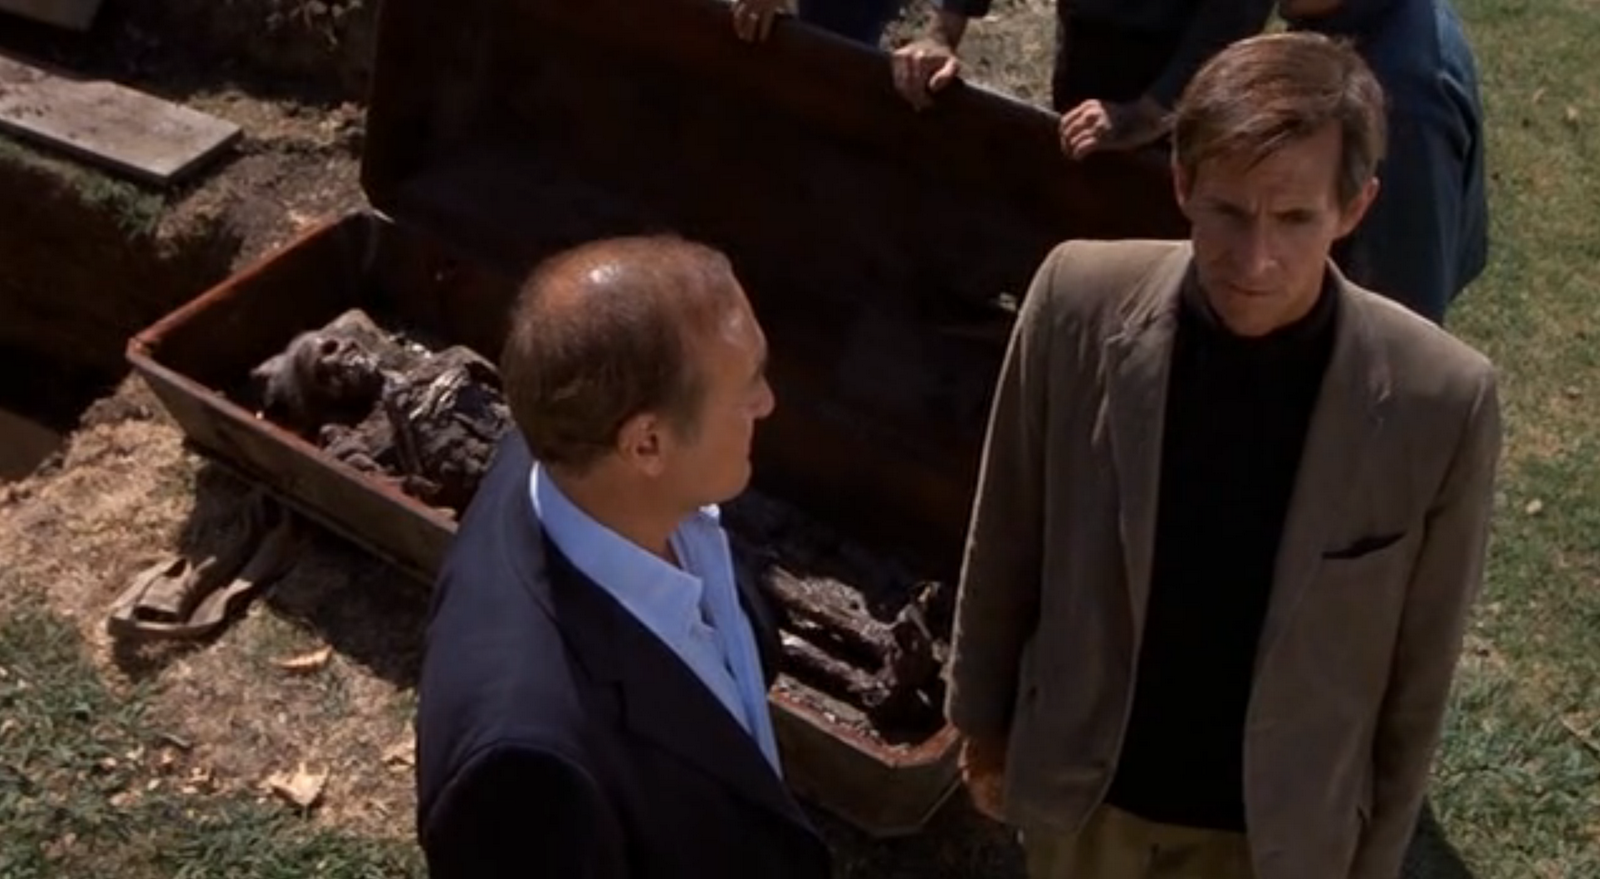 Norman at the graveyard in Psycho II